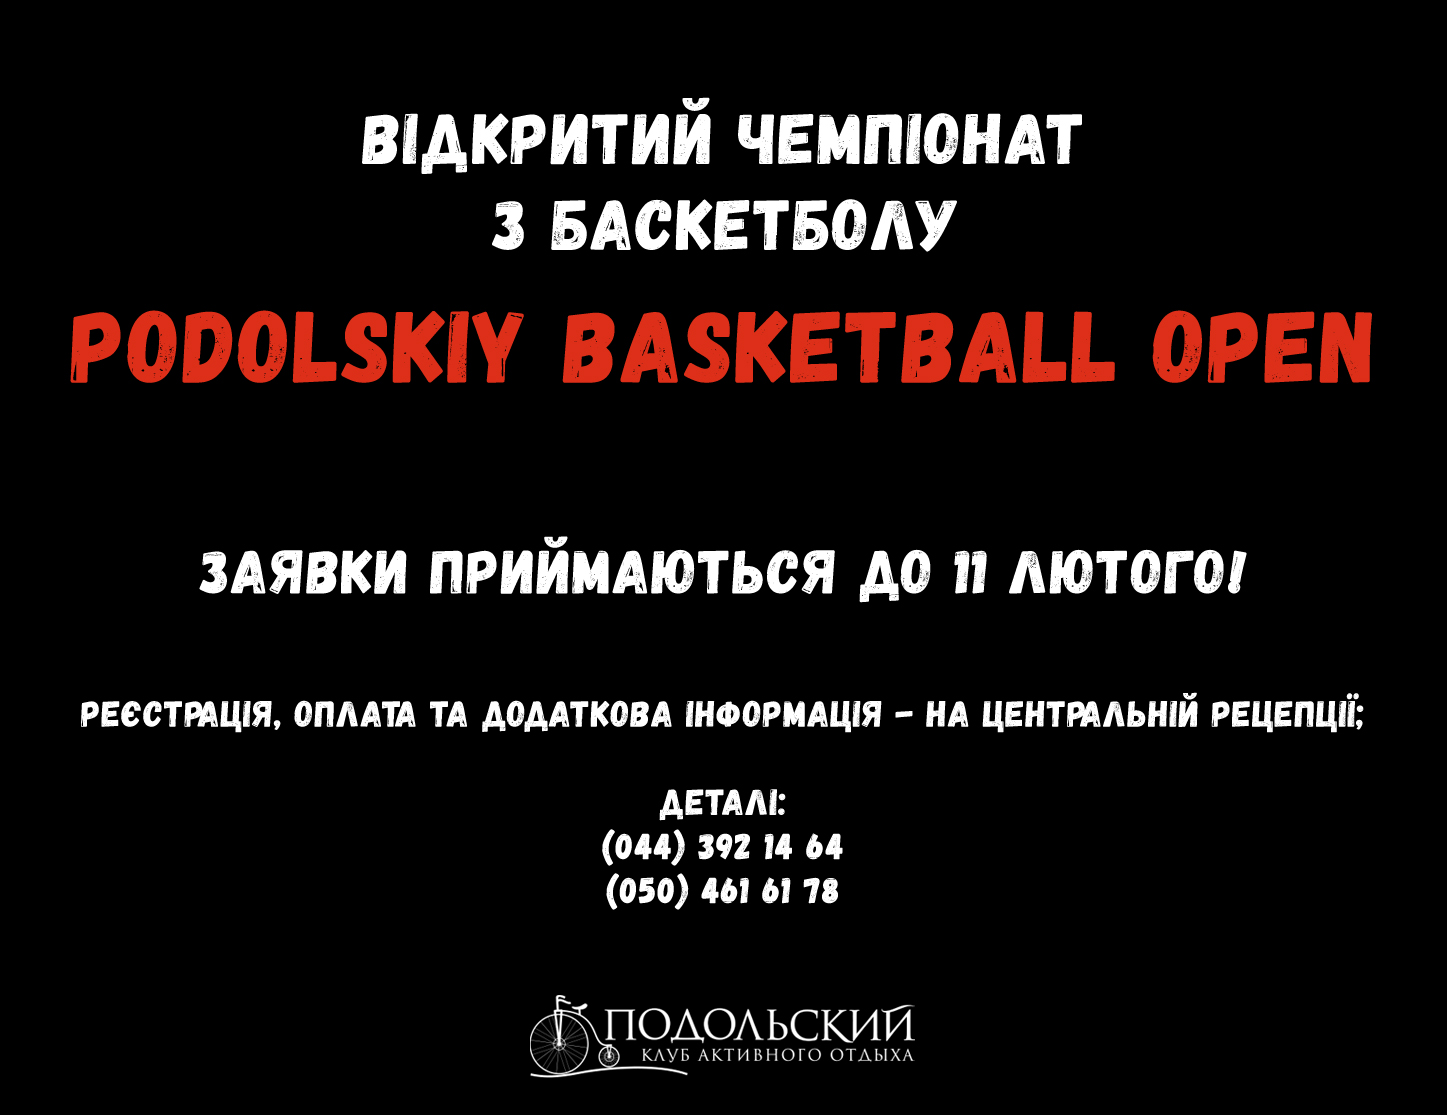 PODOLSKIY BASKETBALL OPEN - 12.02.2016